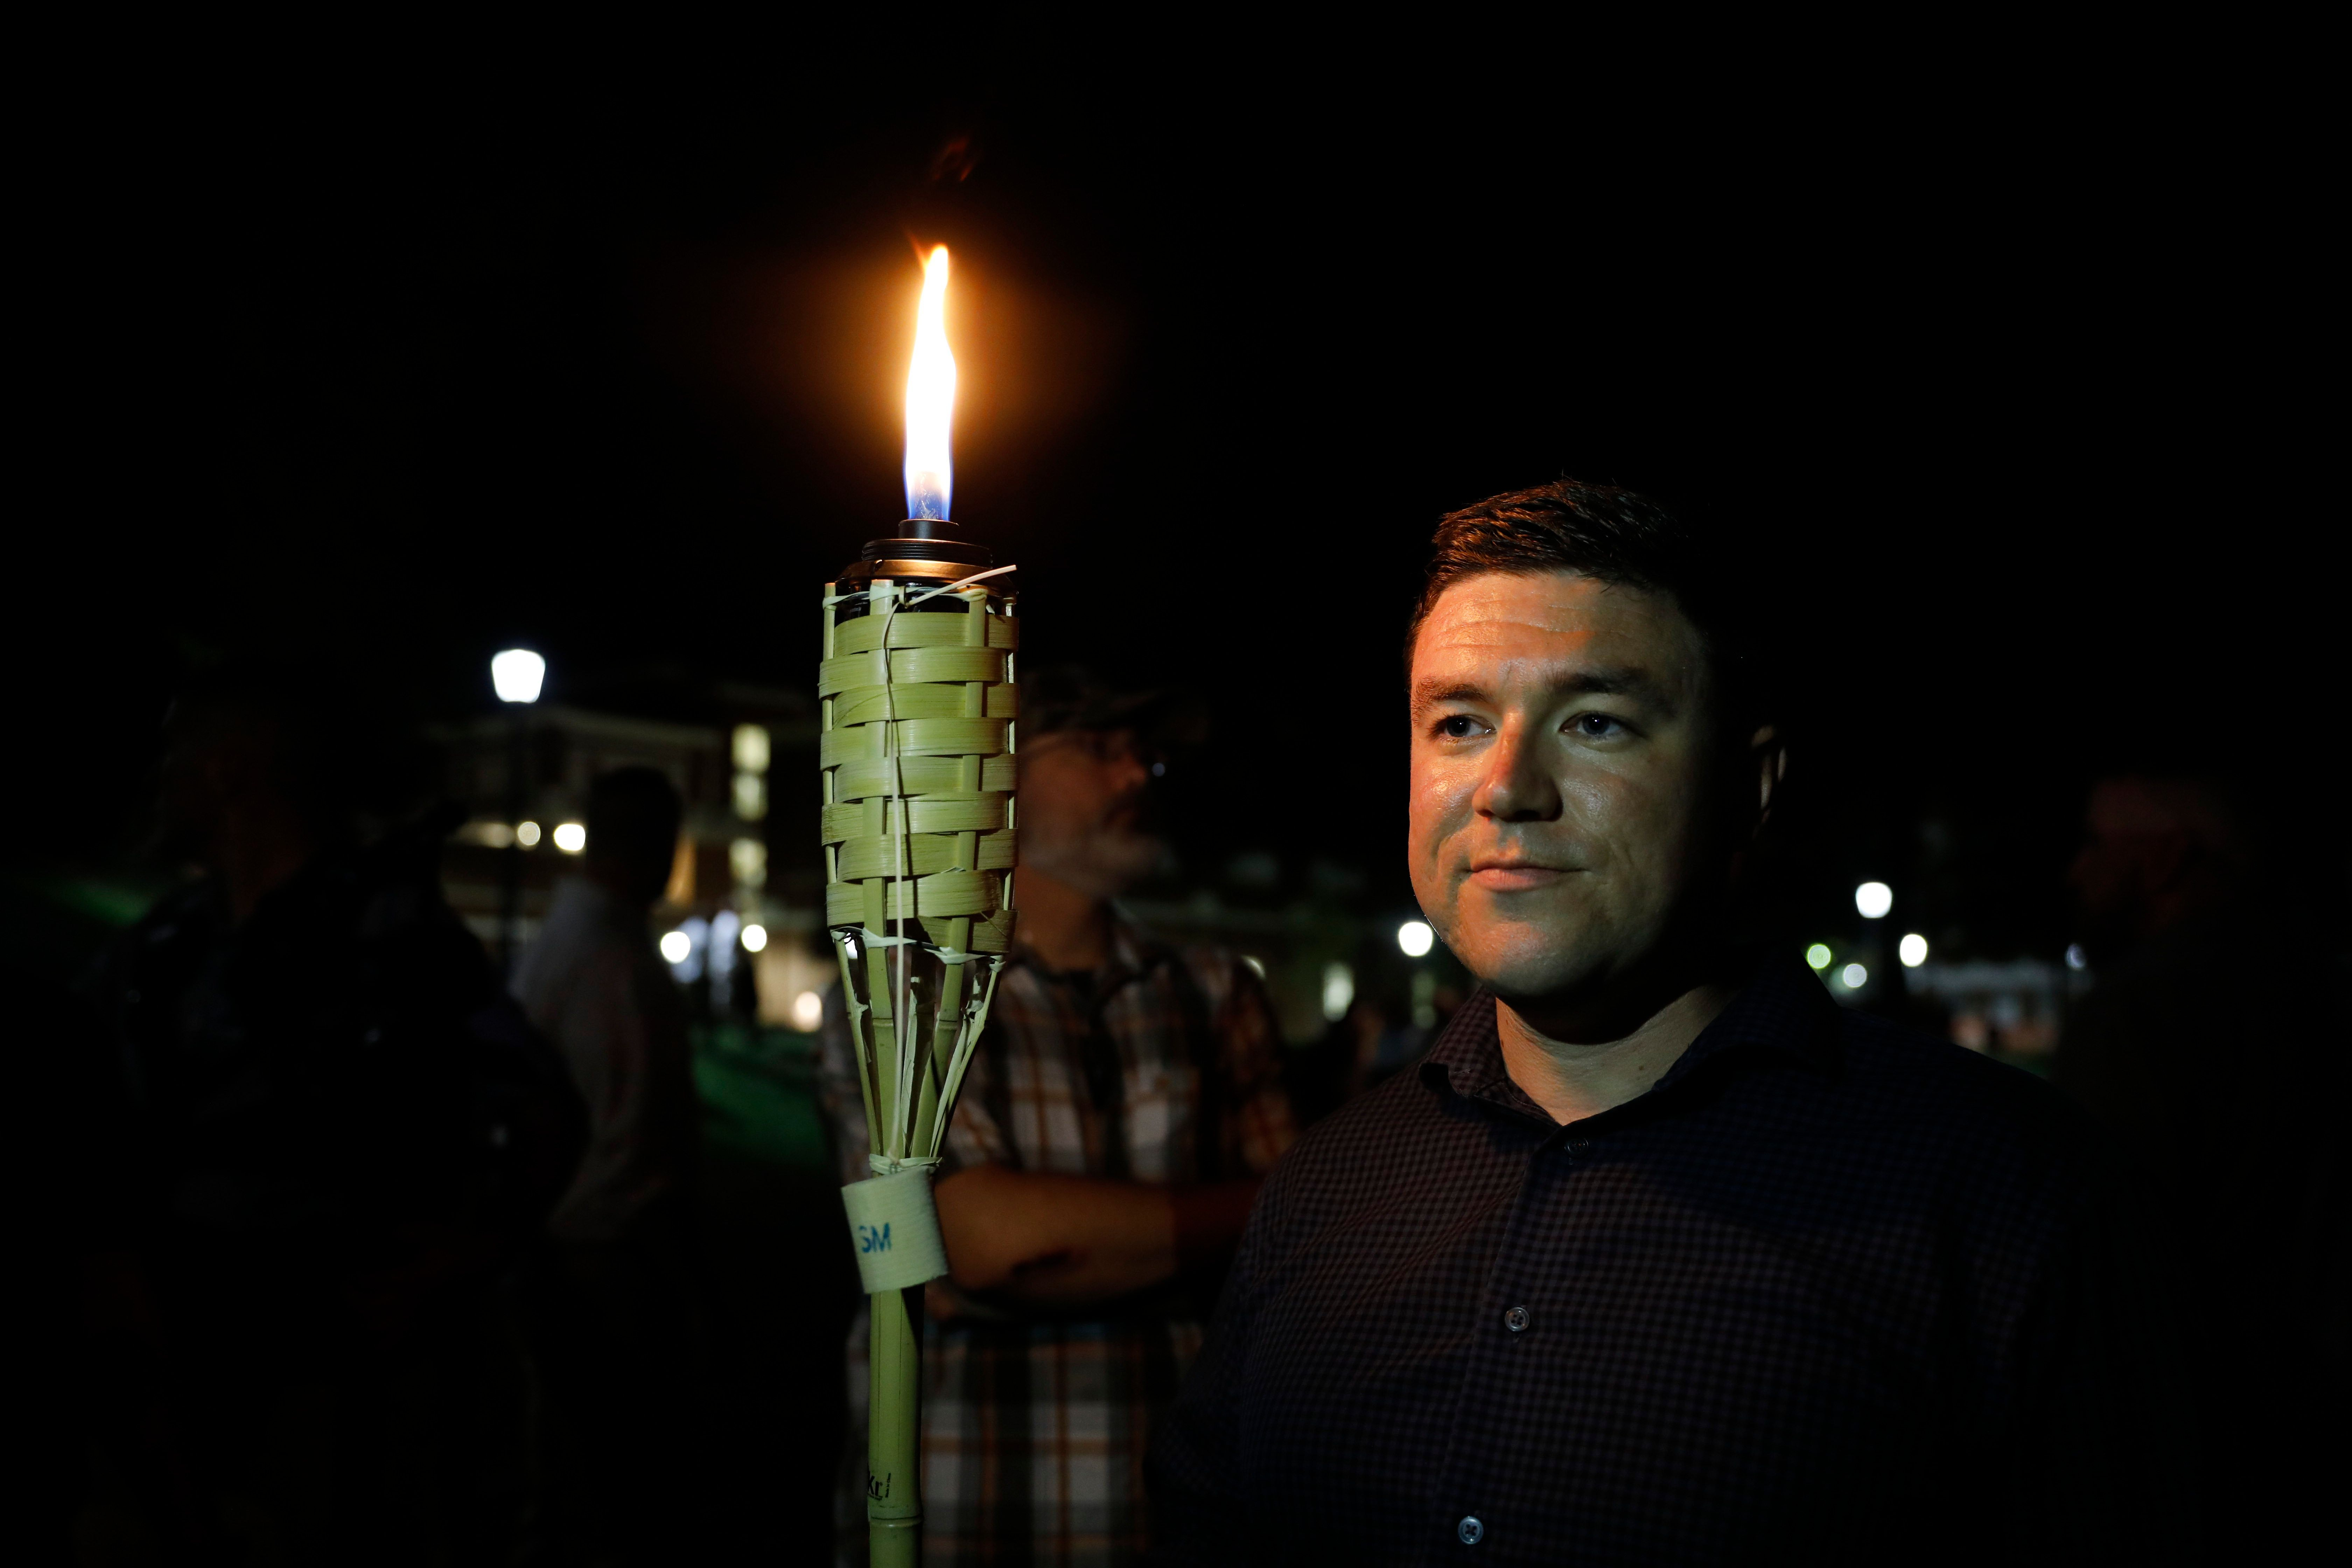 CHARLOTTESVILLE,VA-AUG11: Jason Kessler, the organizer of the Unite the Right rally before the torch march at the University of Virginia. (Photo by Evelyn Hockstein/For The Washington Post via Getty Images)